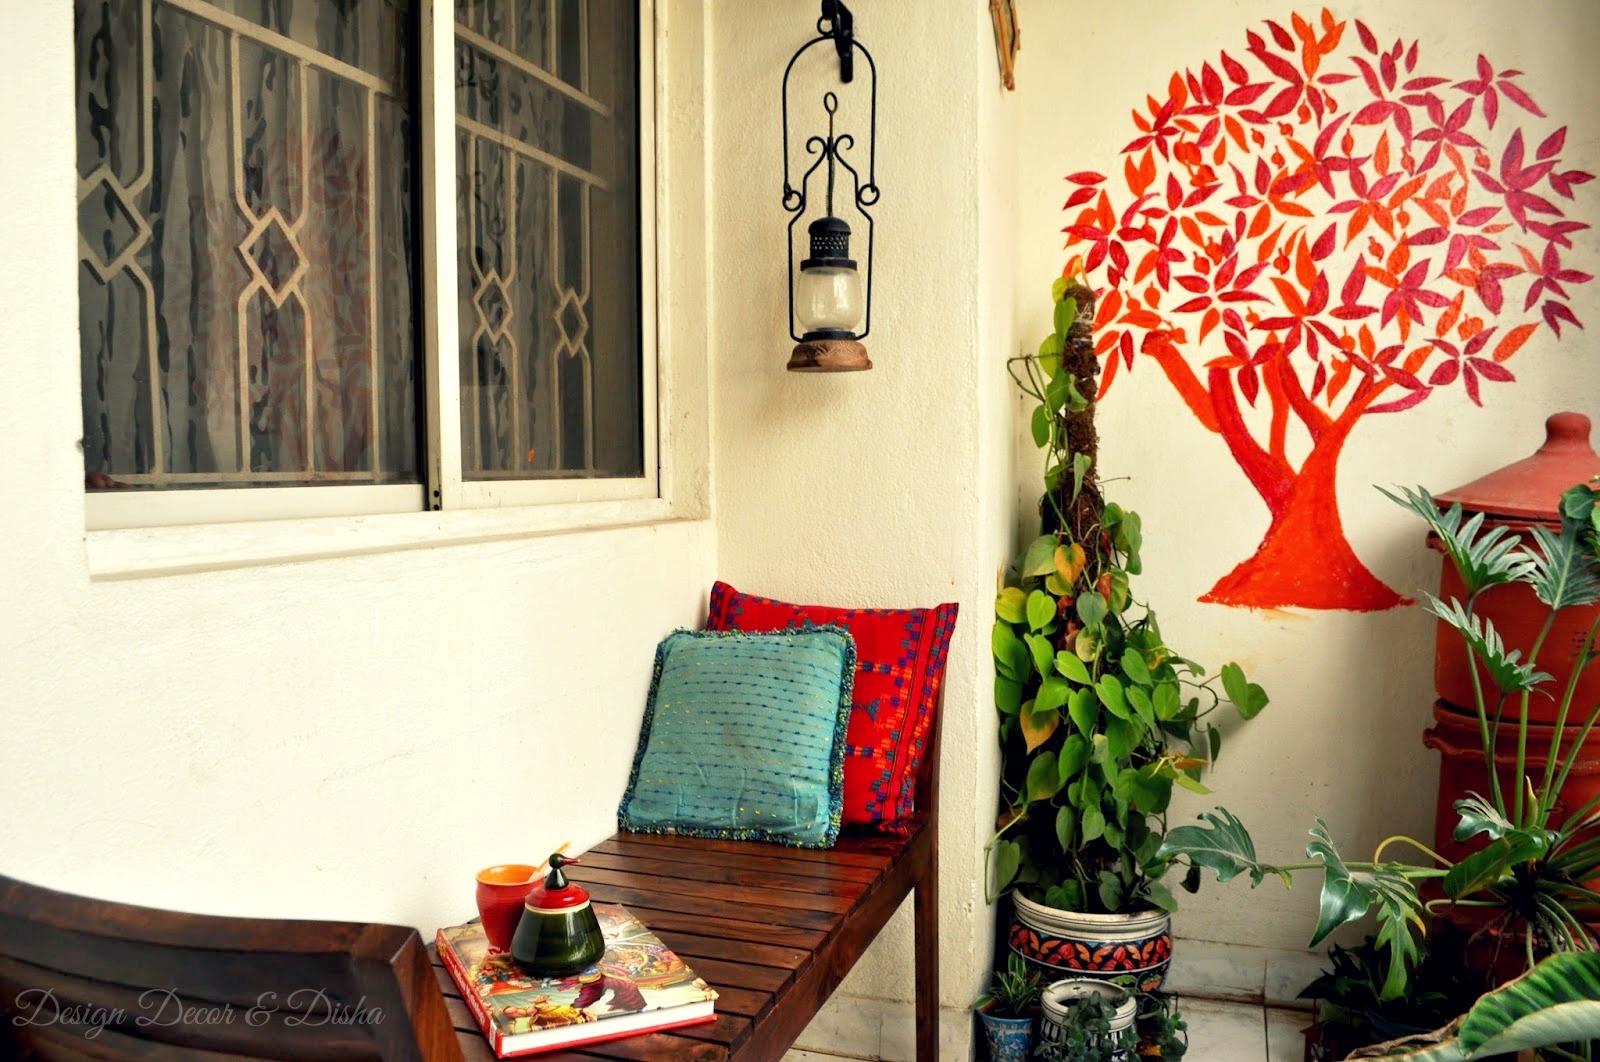 Design decor disha an indian design decor blog home for Balcony wall decoration